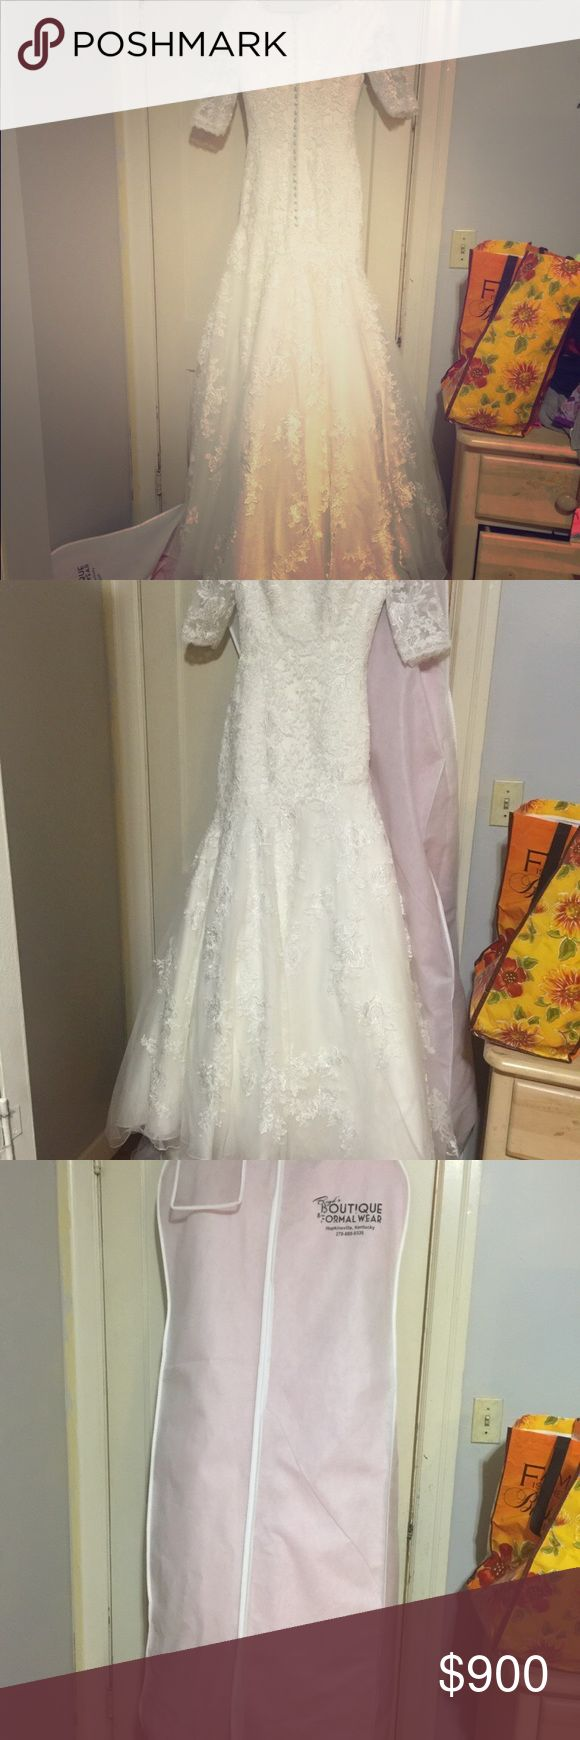 Brand new lace modest Allure ivory wedding dress Brand new never worn! Beautiful modest lace ivory wedding dress. Allure Bridals Dresses Wedding